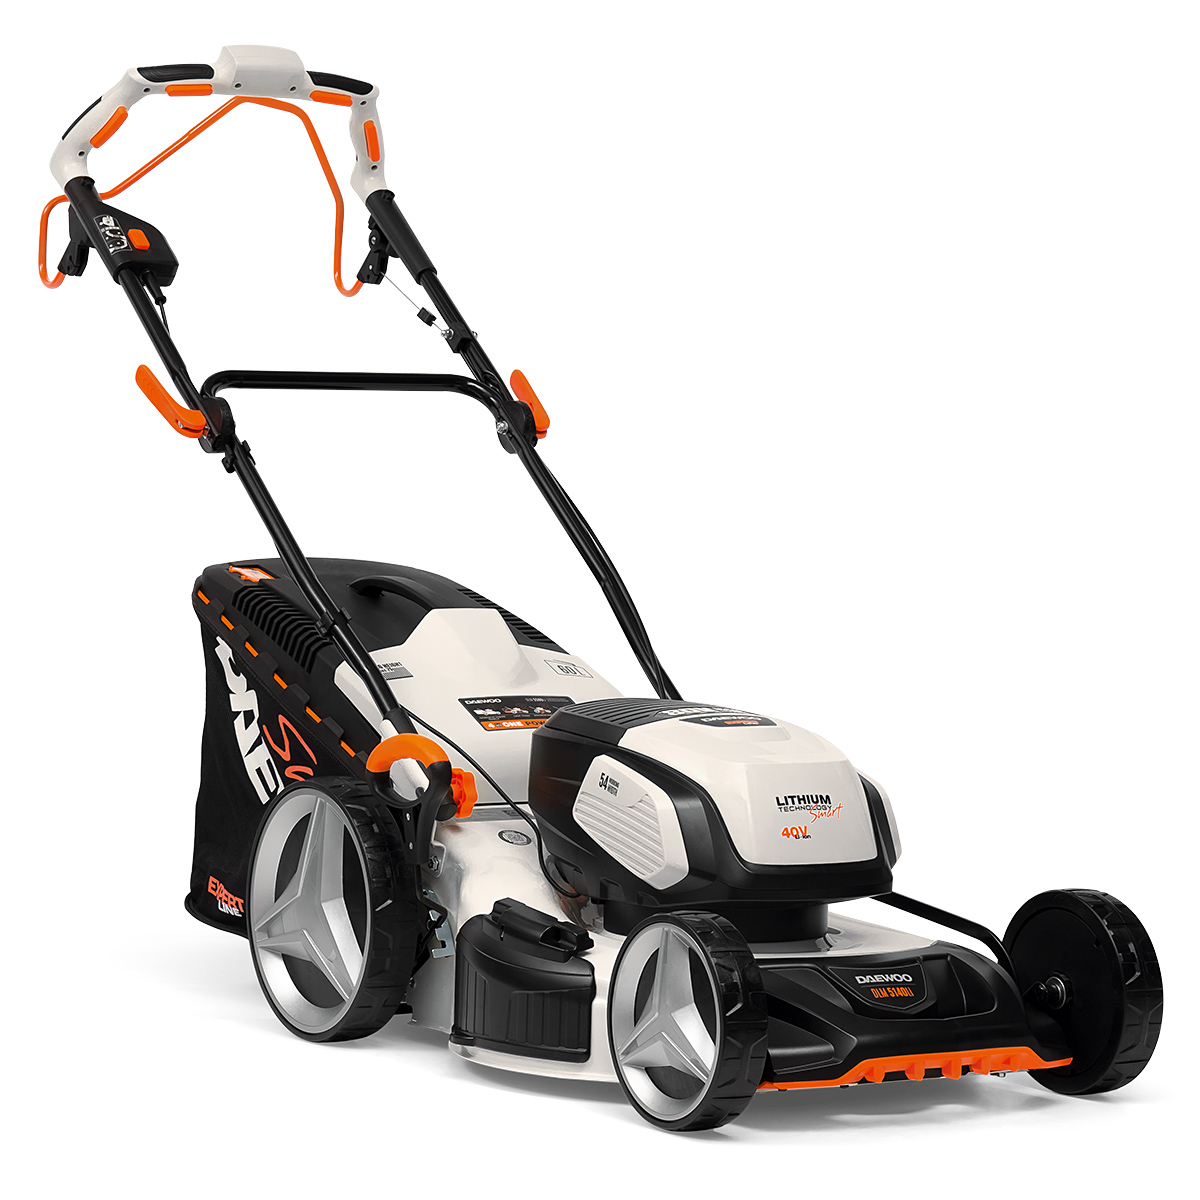 Battery Lawn Mower Daewoo DLM 5140Li